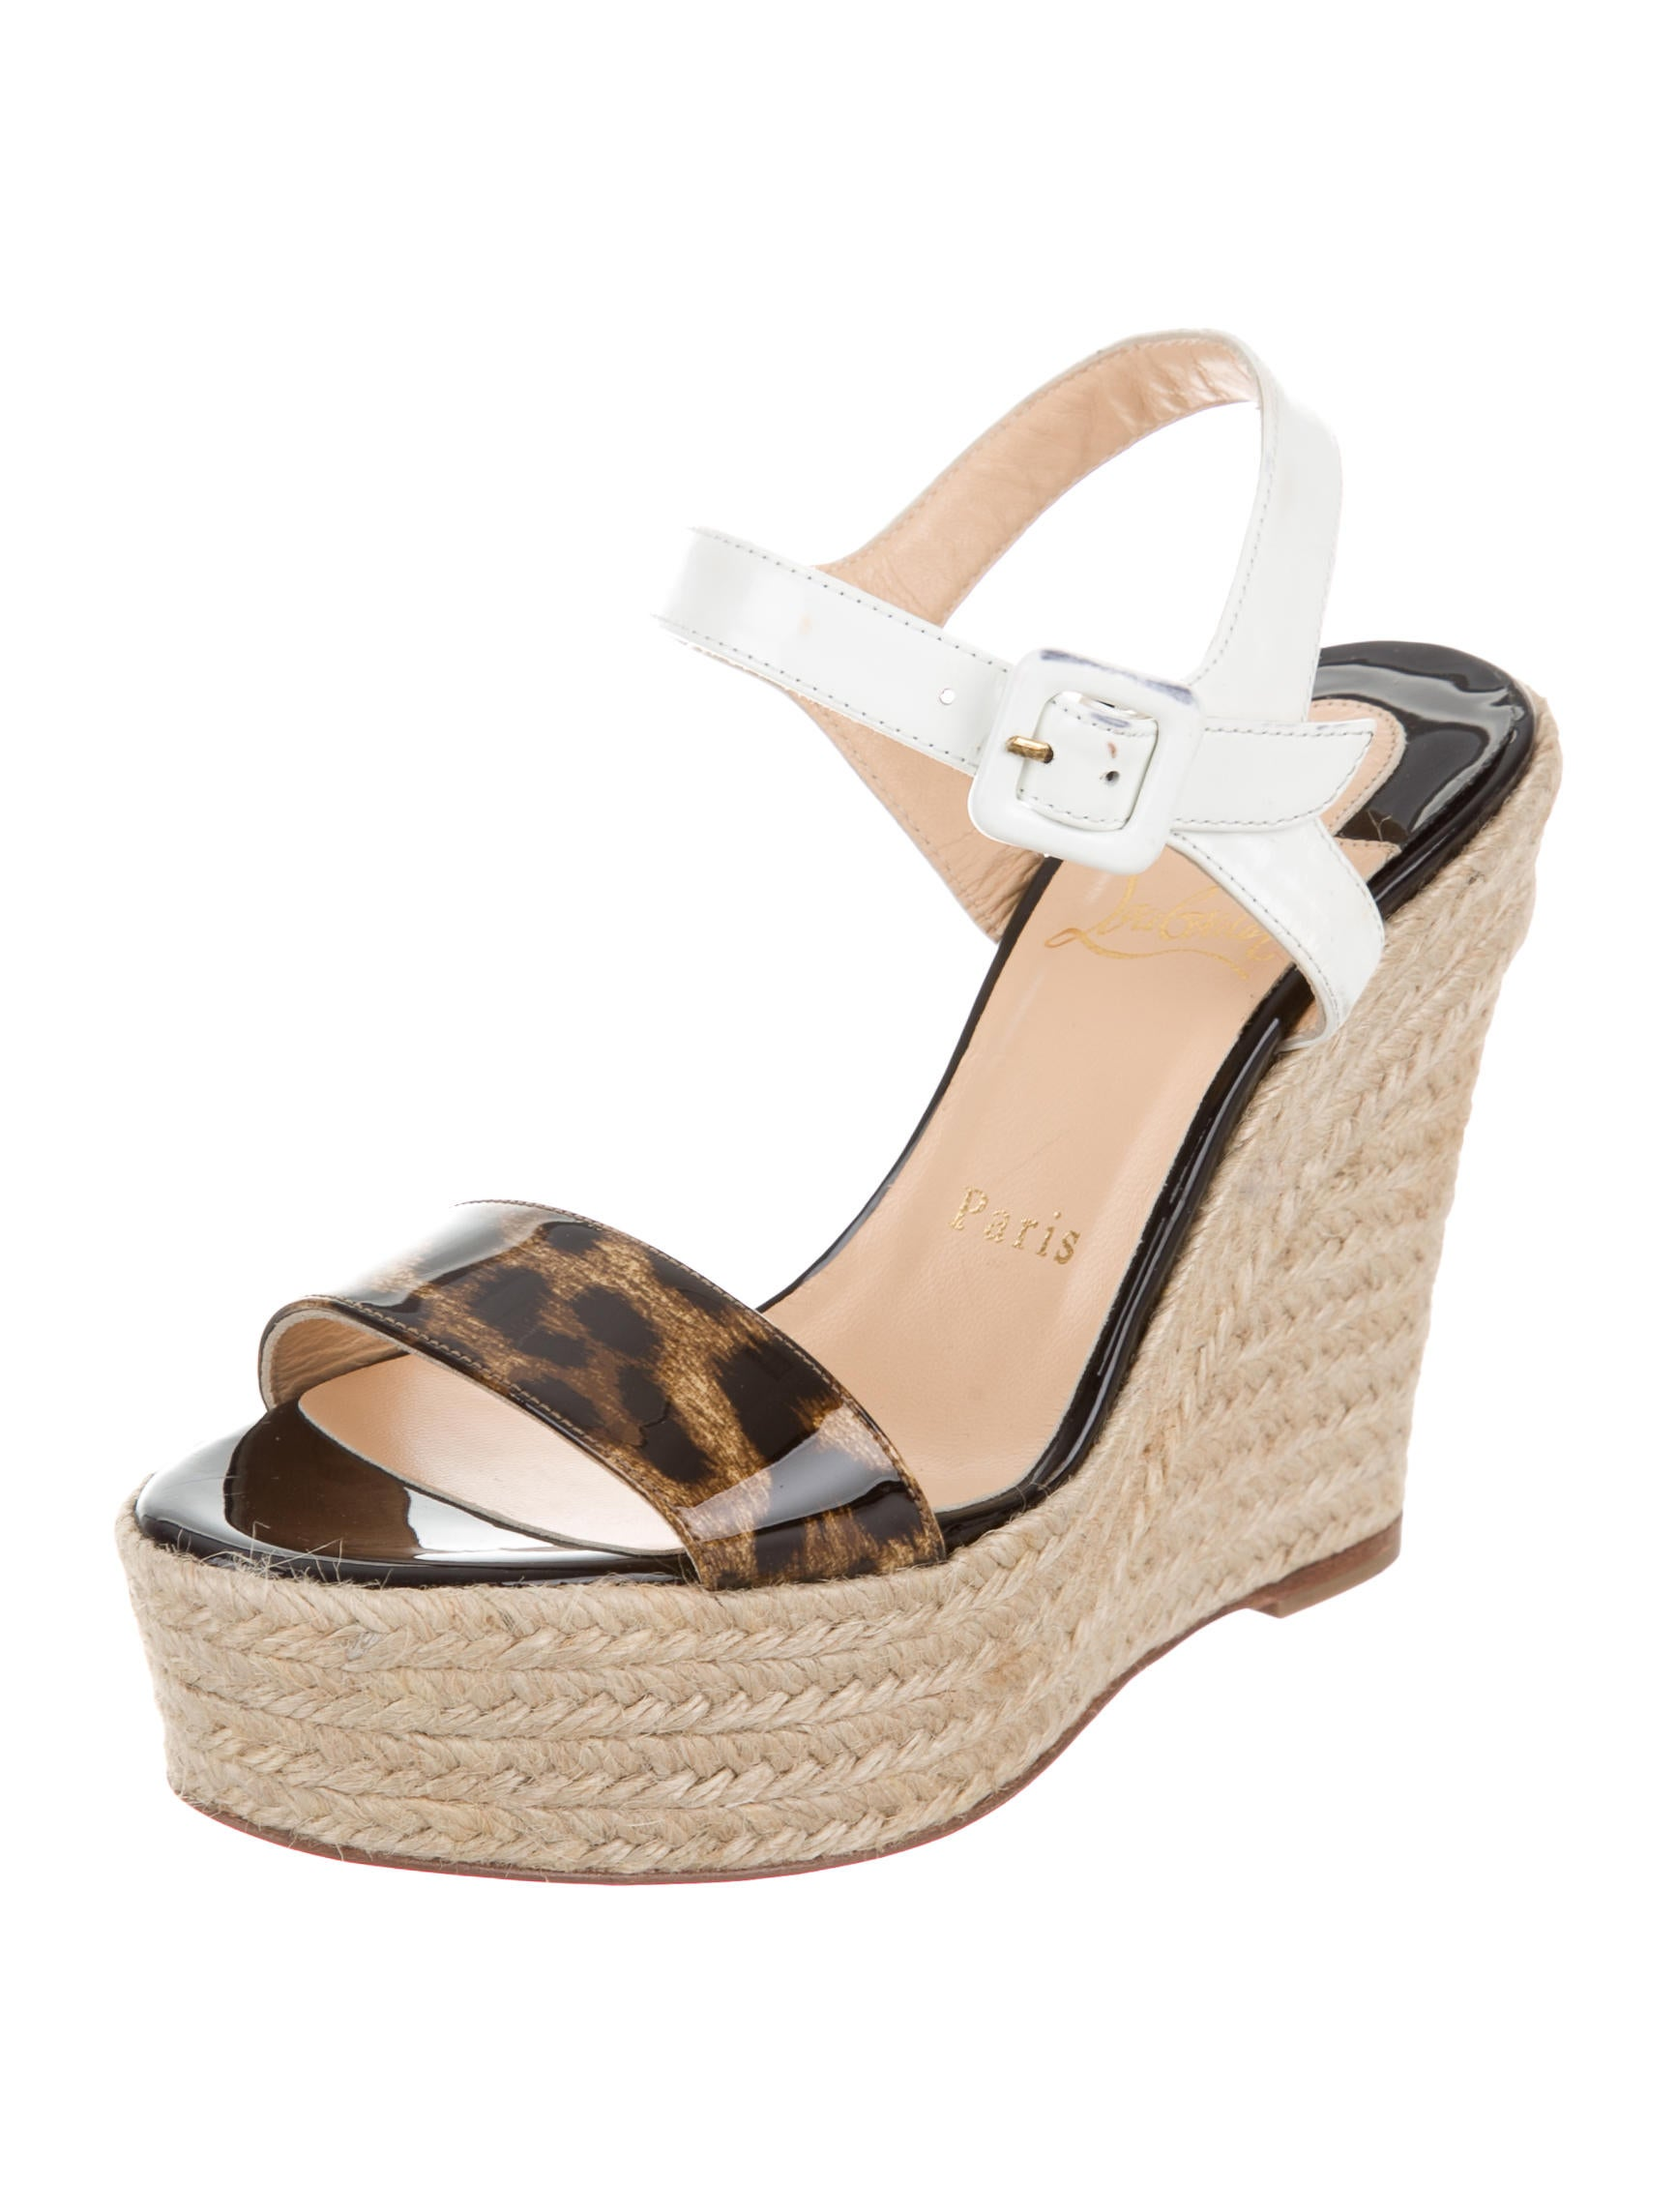 christian louboutin espadrille wedge sandals shoes